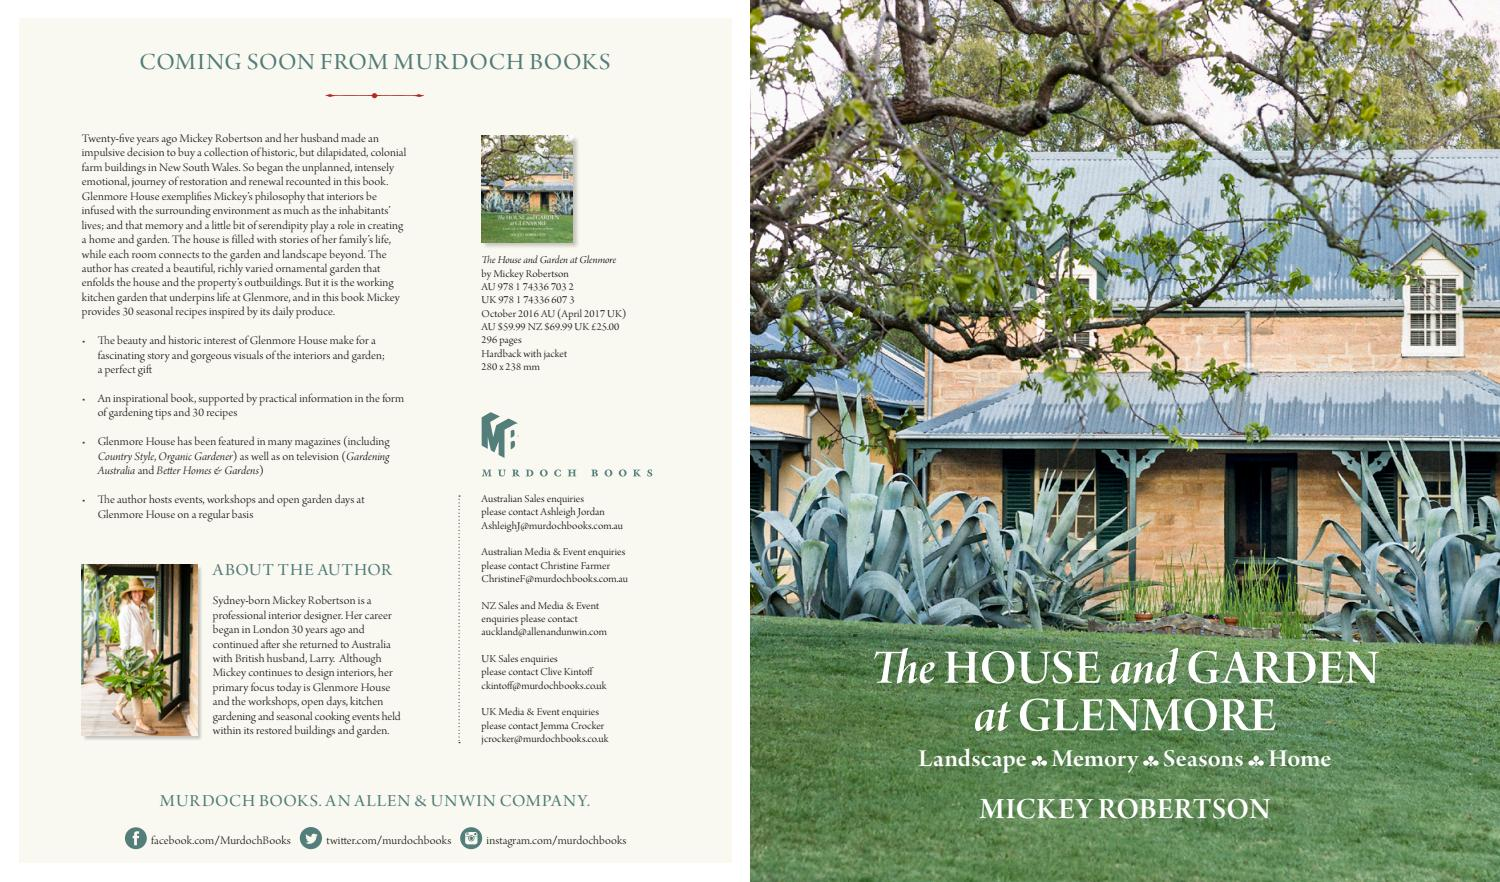 the house and garden at glenmore mickey robertson october 2016 by the house and garden at glenmore mickey robertson october 2016 by murdoch books issuu